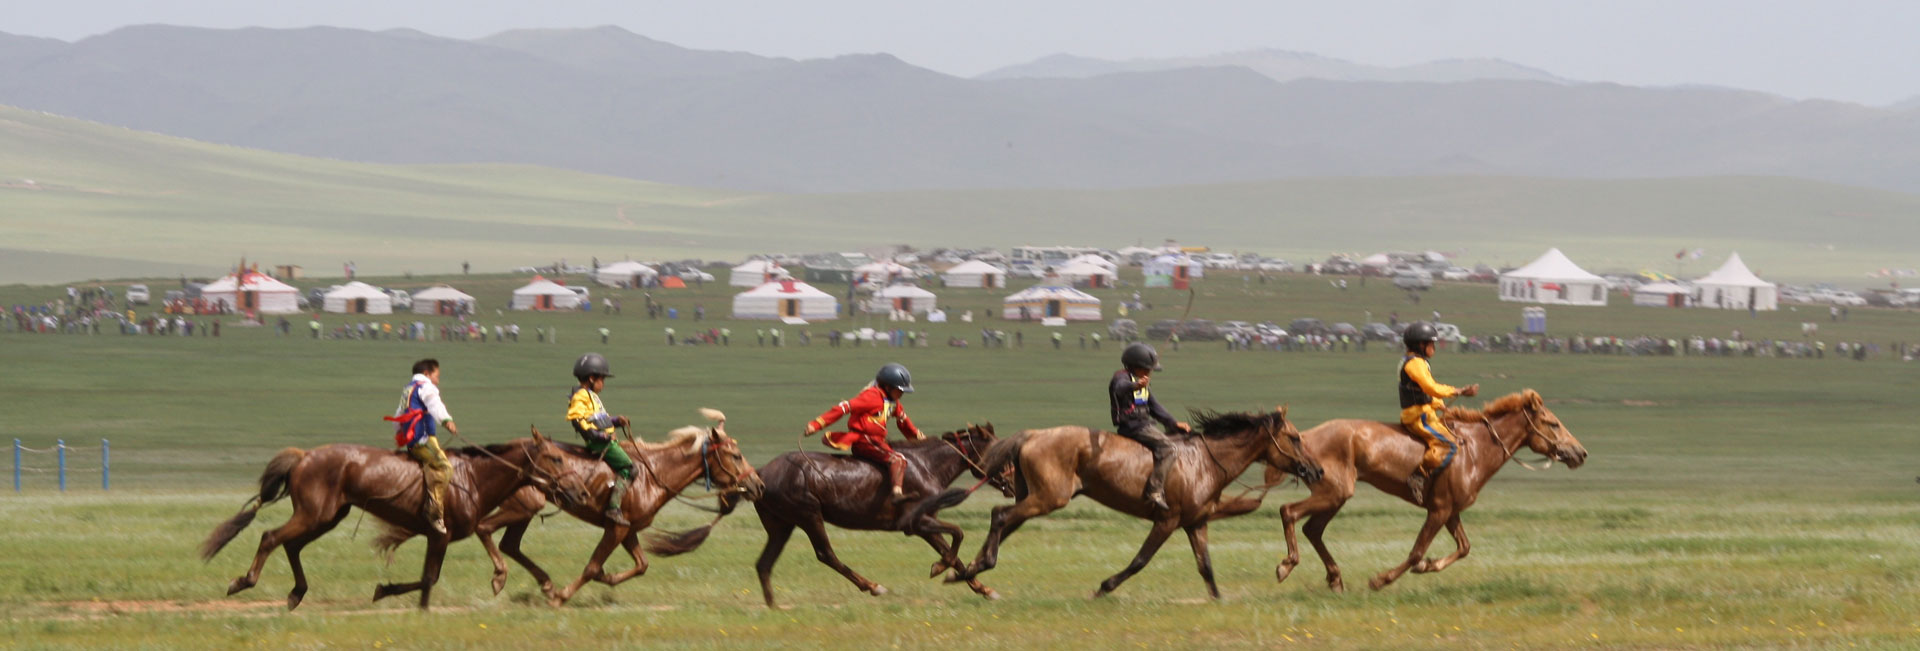 Horse racing games at Mongolia's Naadam Festival. Photo credit: Devin Connolly